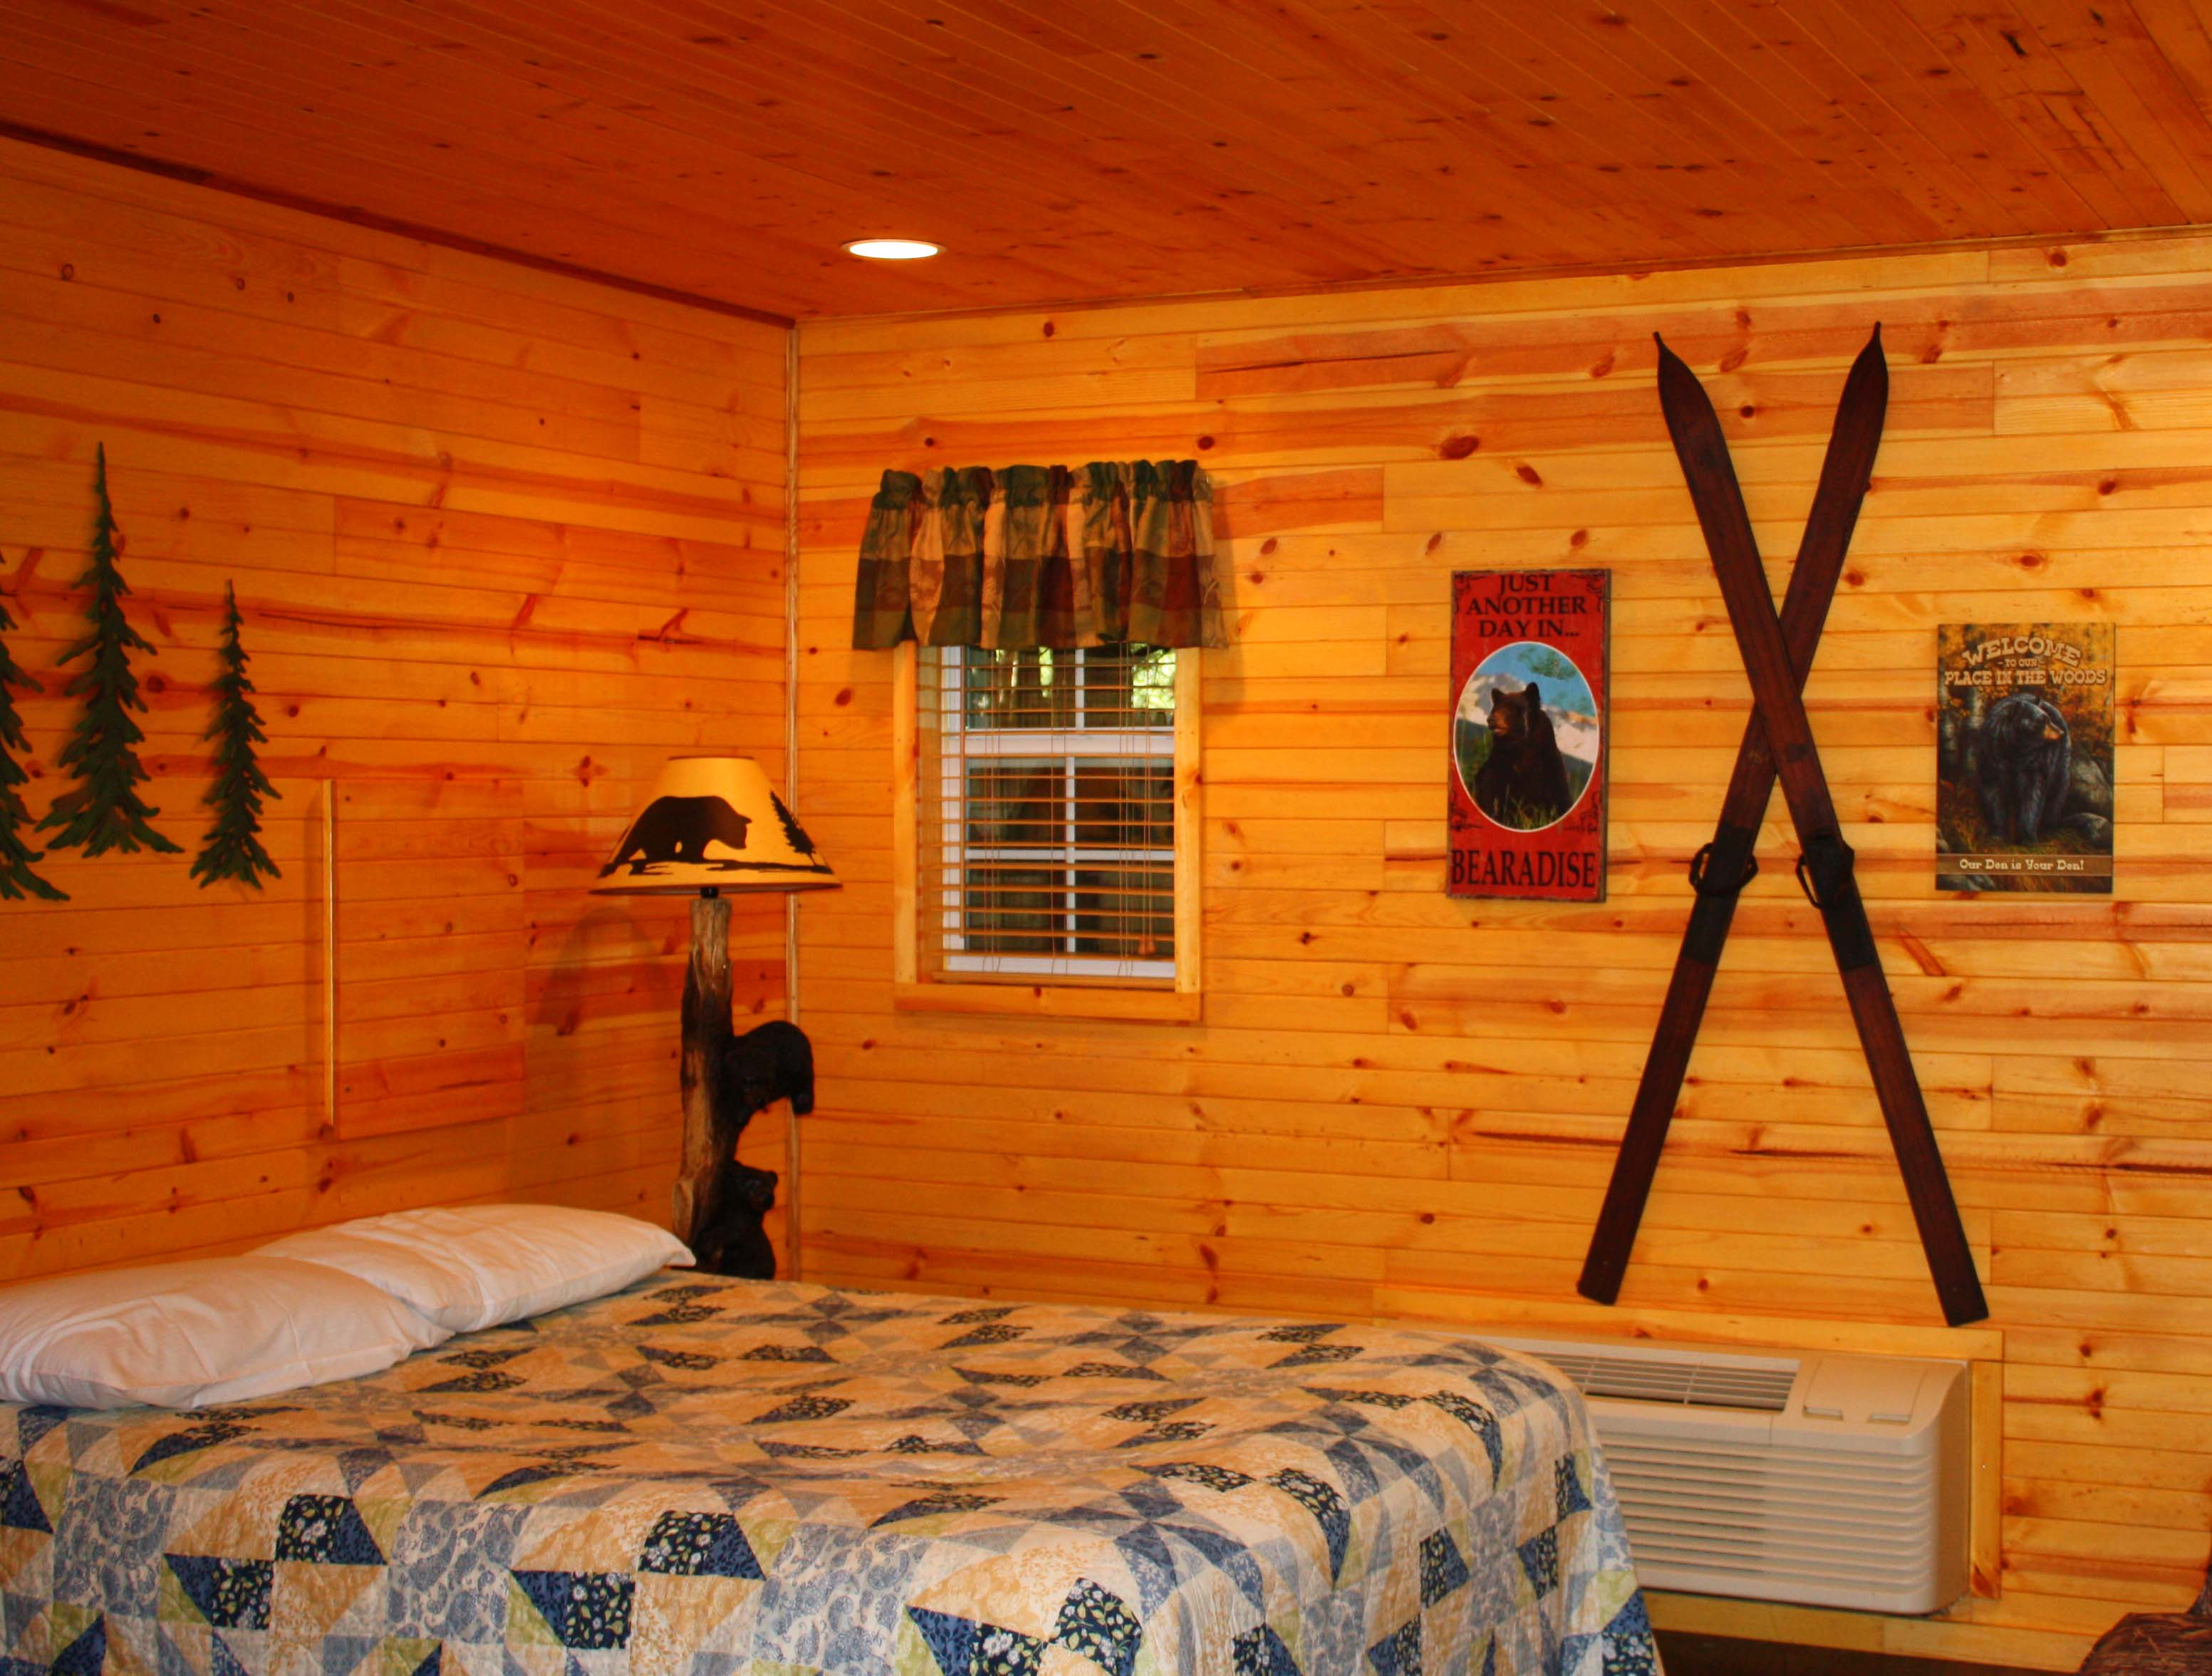 style in manufactured log inspiration pa montana tiny talentneeds for adirondack cheap cozy cabin com cabins plans rentals trappers rent bathroom mountain